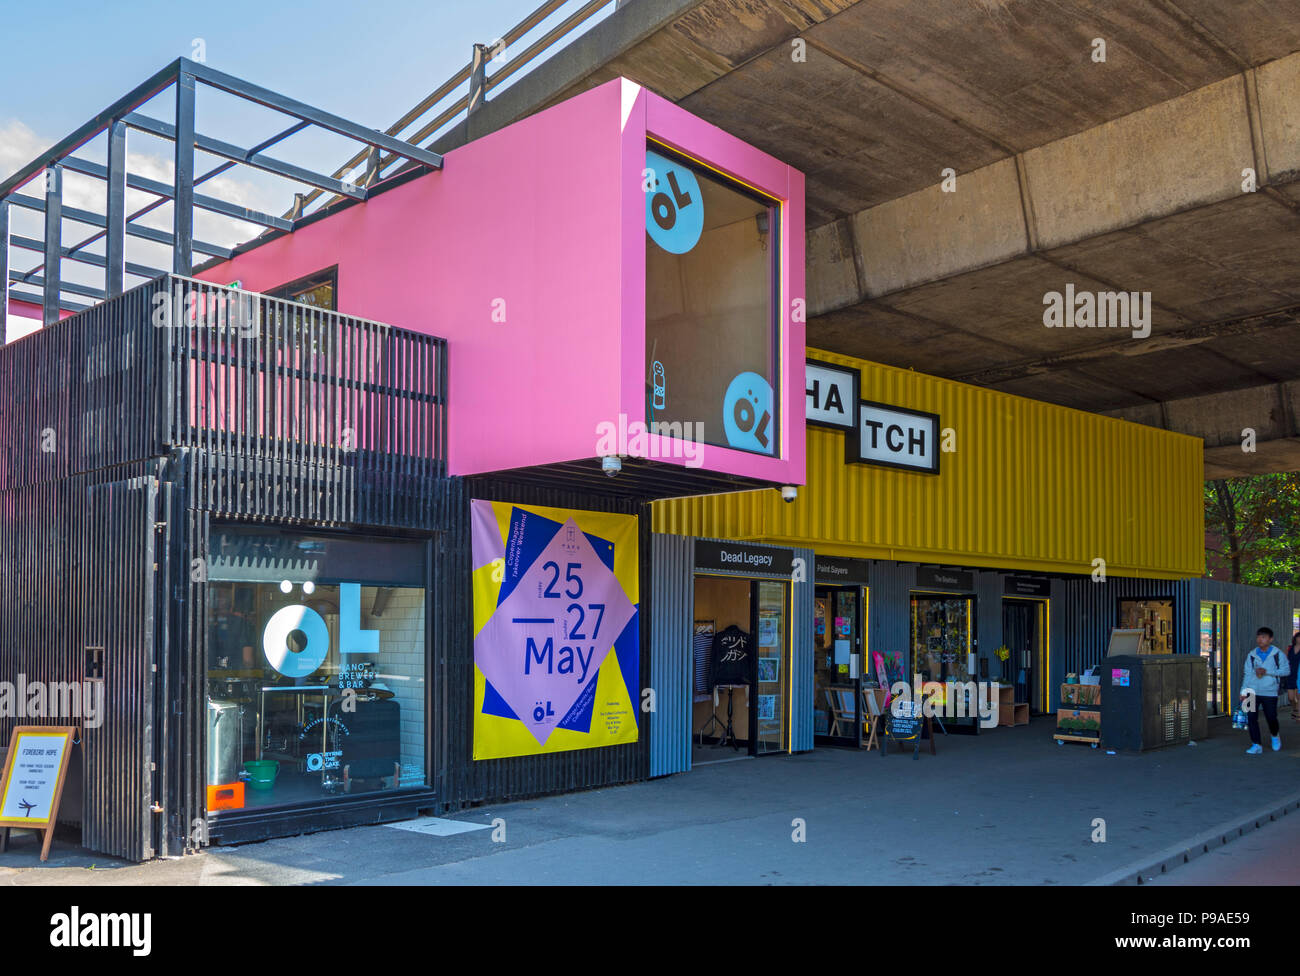 The Hatch, a food and drink outlet built from shipping containers, under the Mancunian Way flyover, Oxford Road, Manchester, England, UK - Stock Image